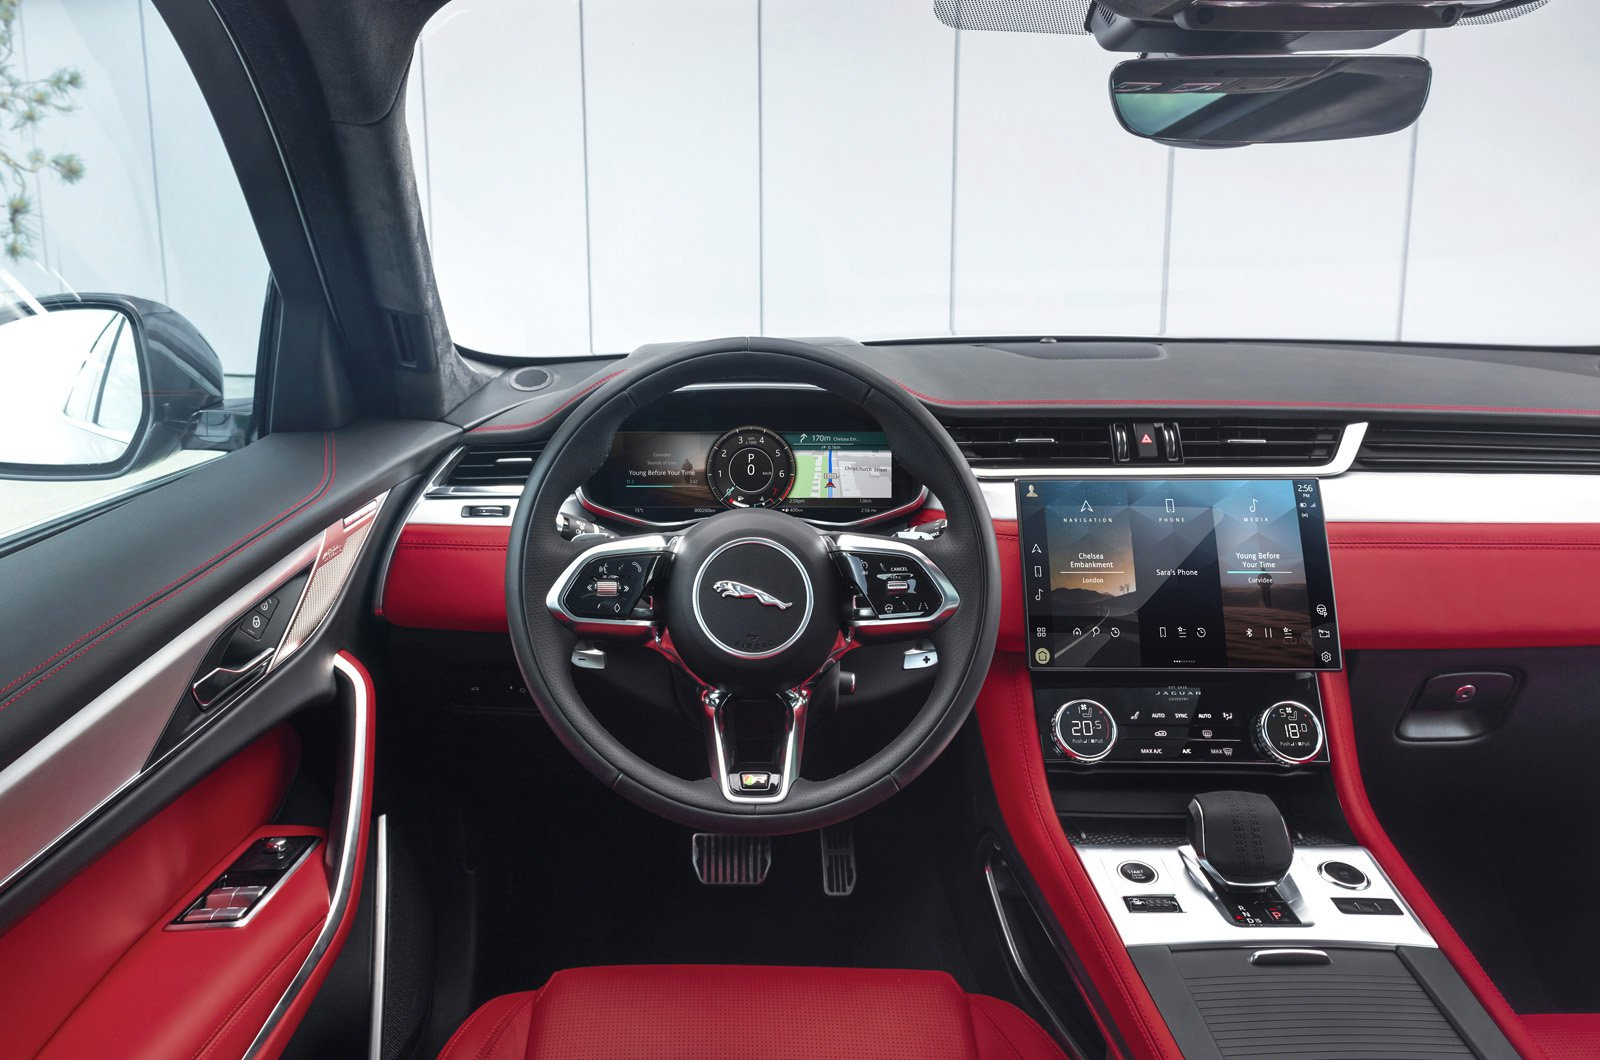 2021_jaguar_f-pace_dashboard_0.jpg